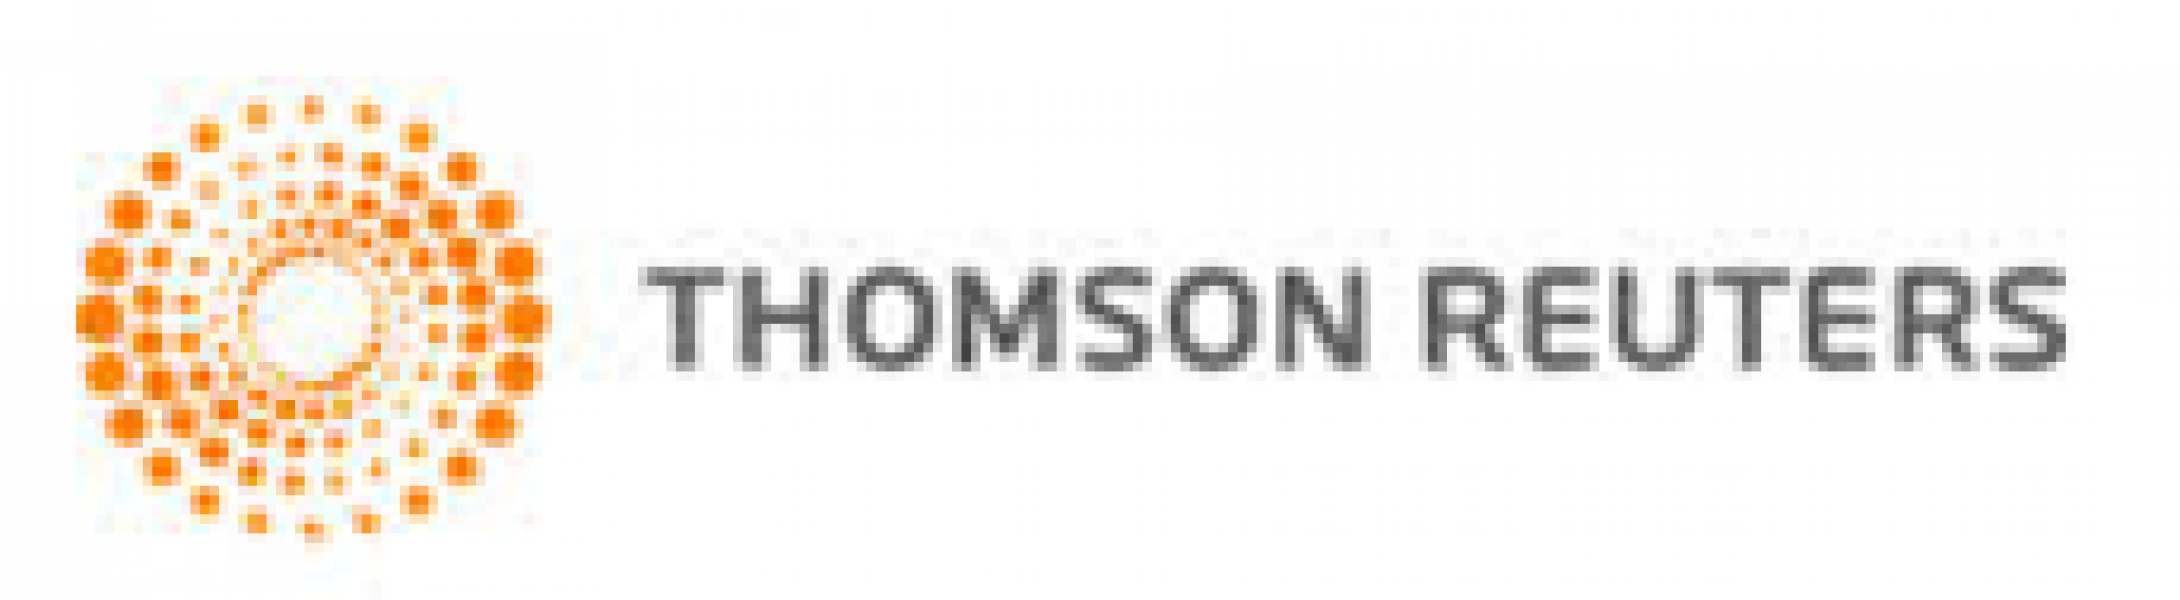 Thomson-Reuters-2013-Investment-Analysis